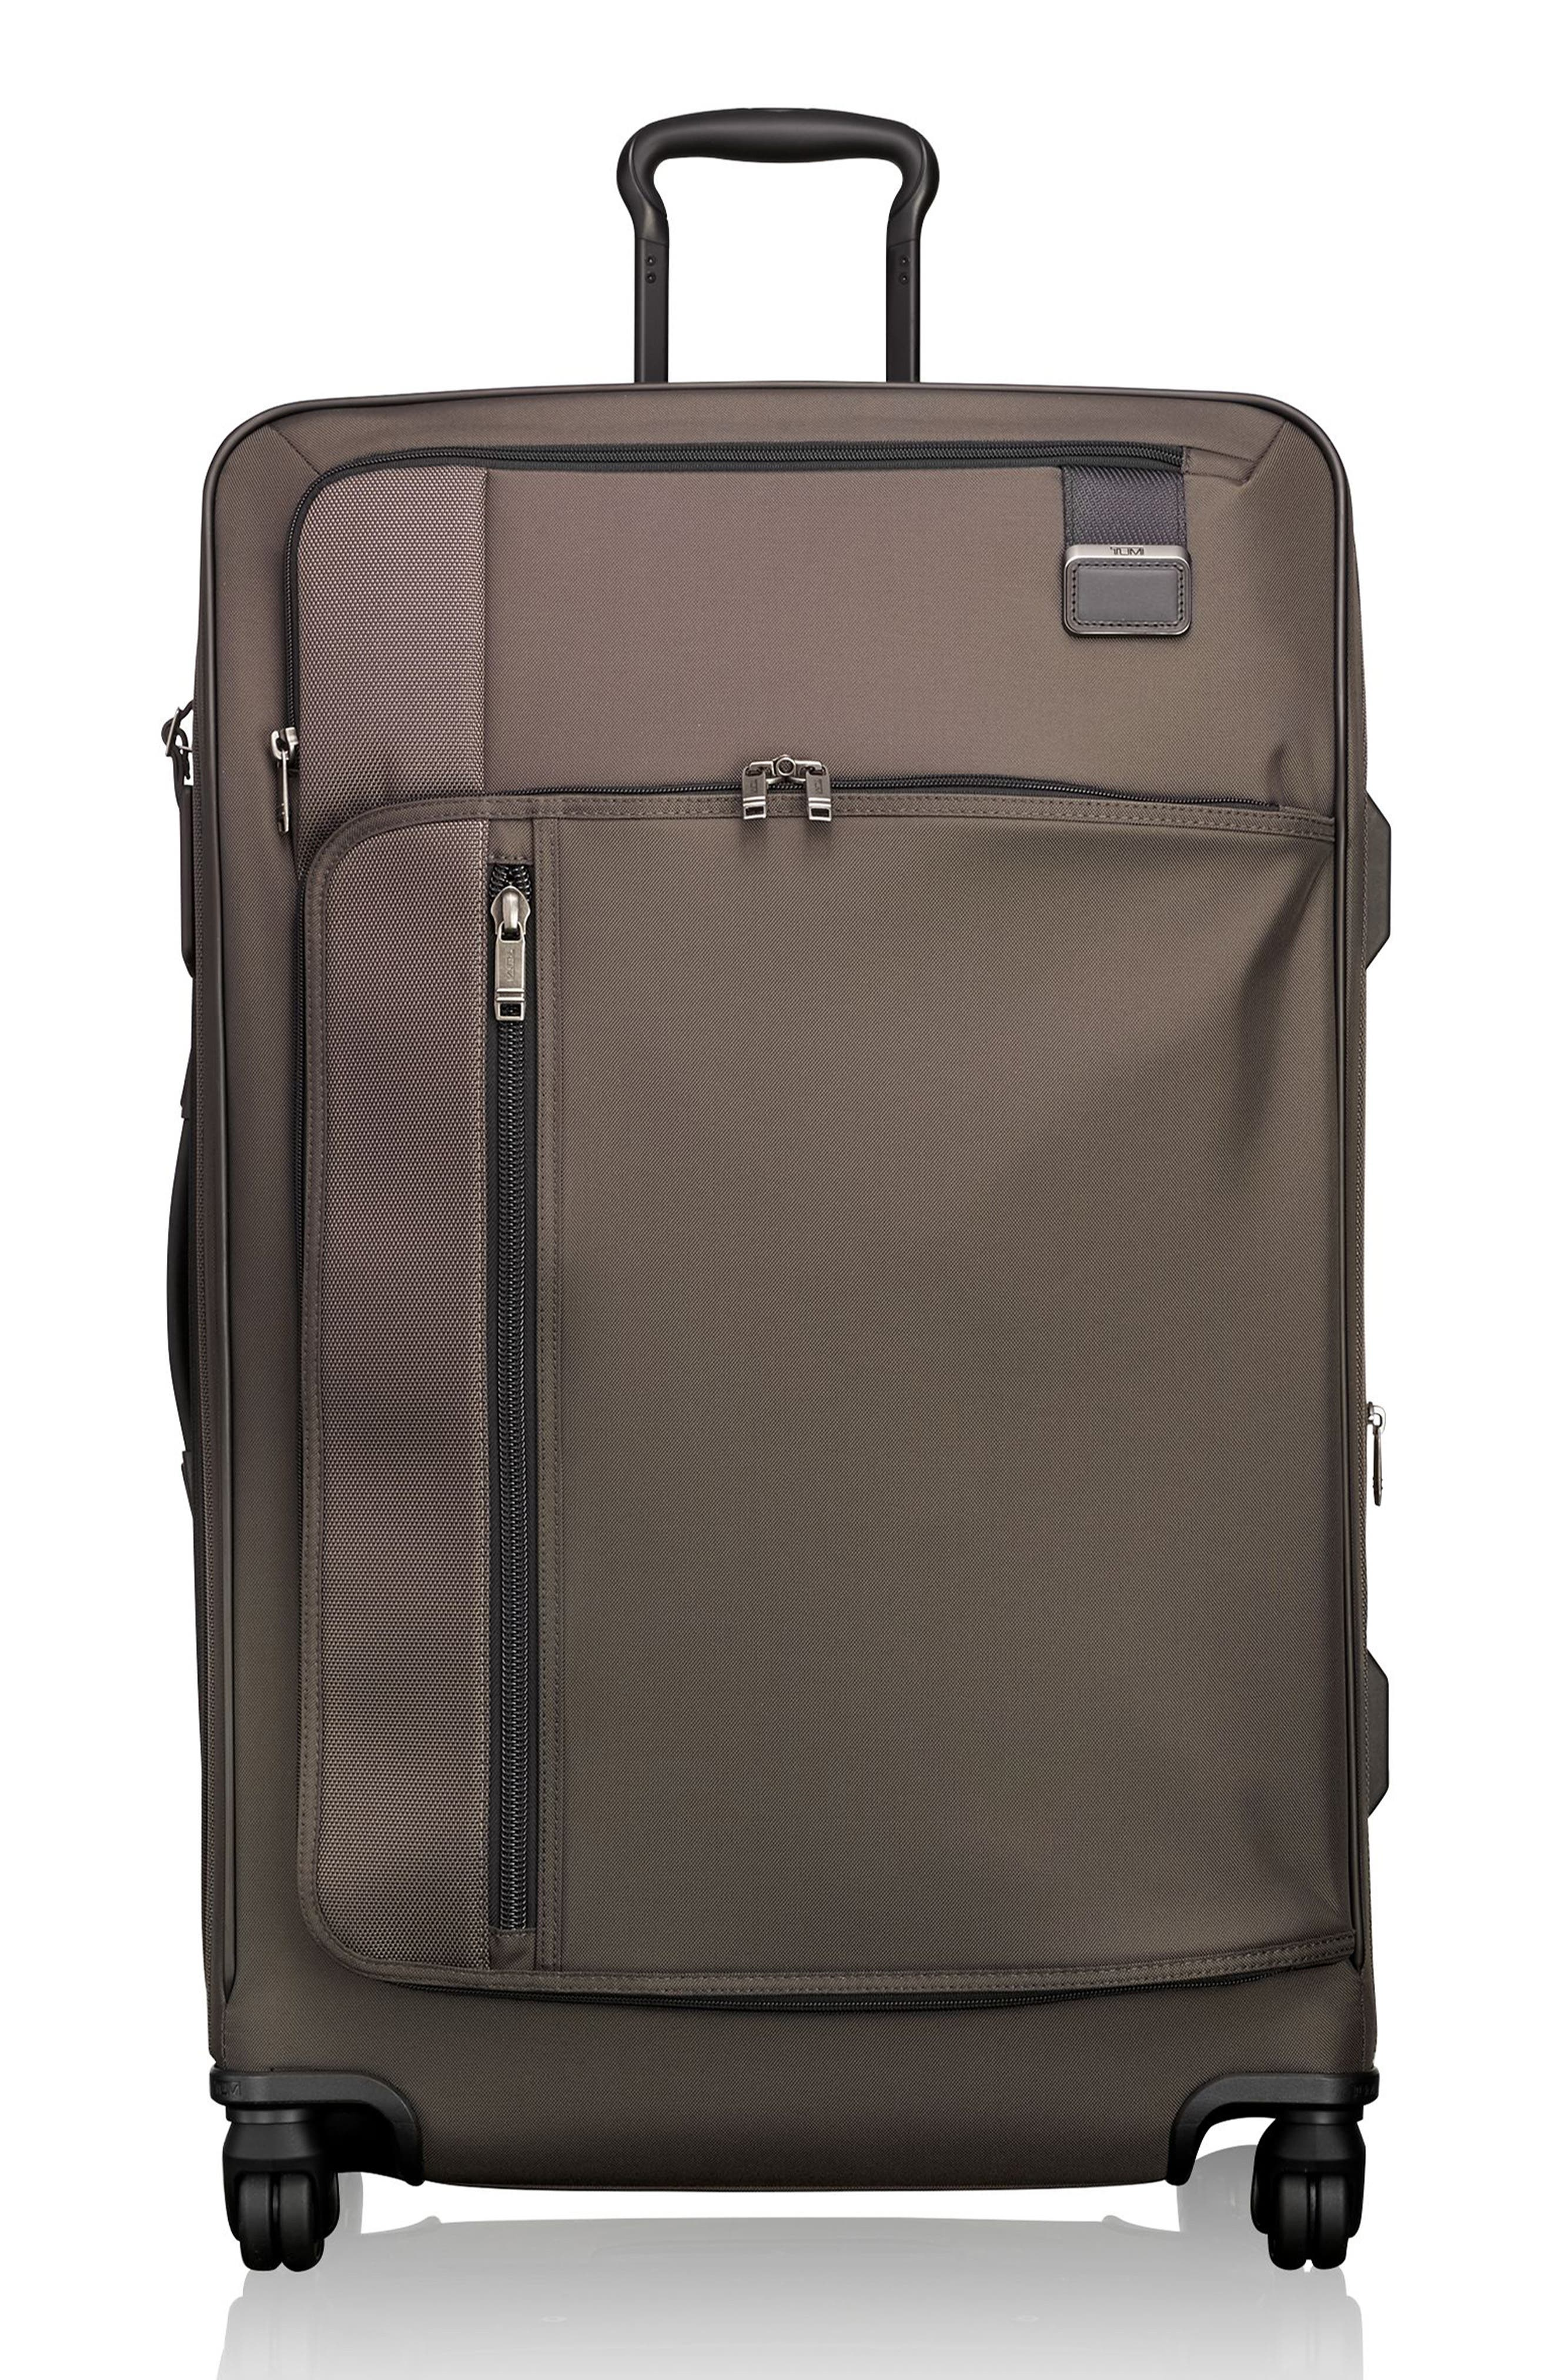 Merge - Extended Trip Expandable Rolling Luggage,                         Main,                         color, Coffee